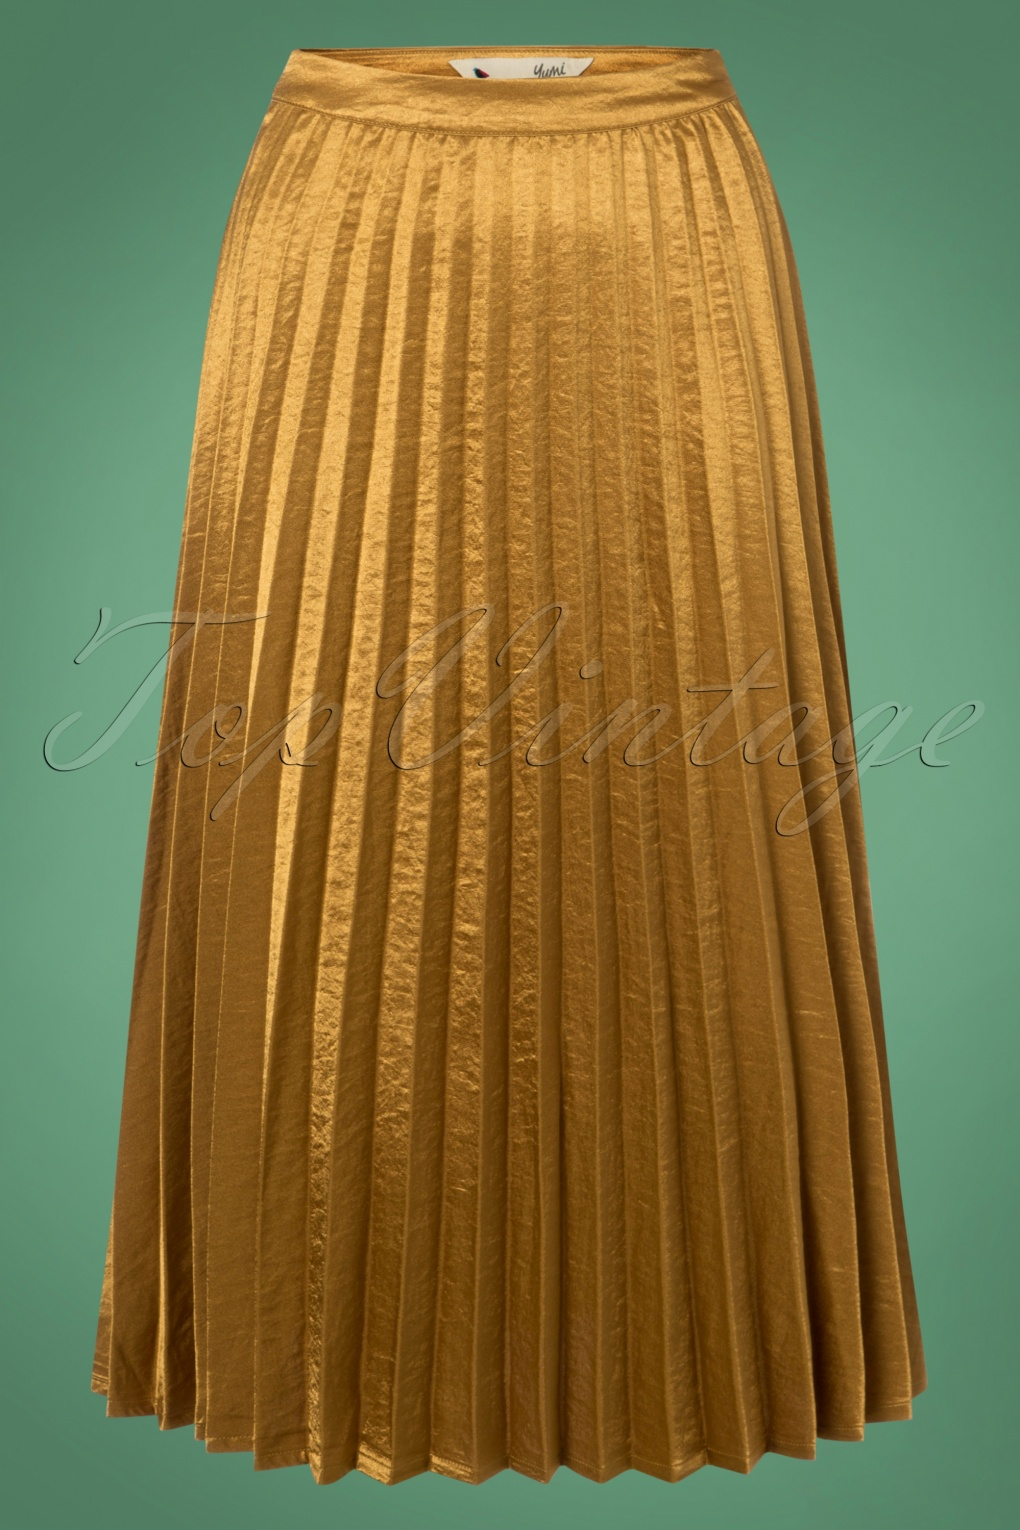 1920s Skirts, Gatsby Skirts, Vintage Pleated Skirts 50s Carole Pleated Skirt in Gold £75.45 AT vintagedancer.com